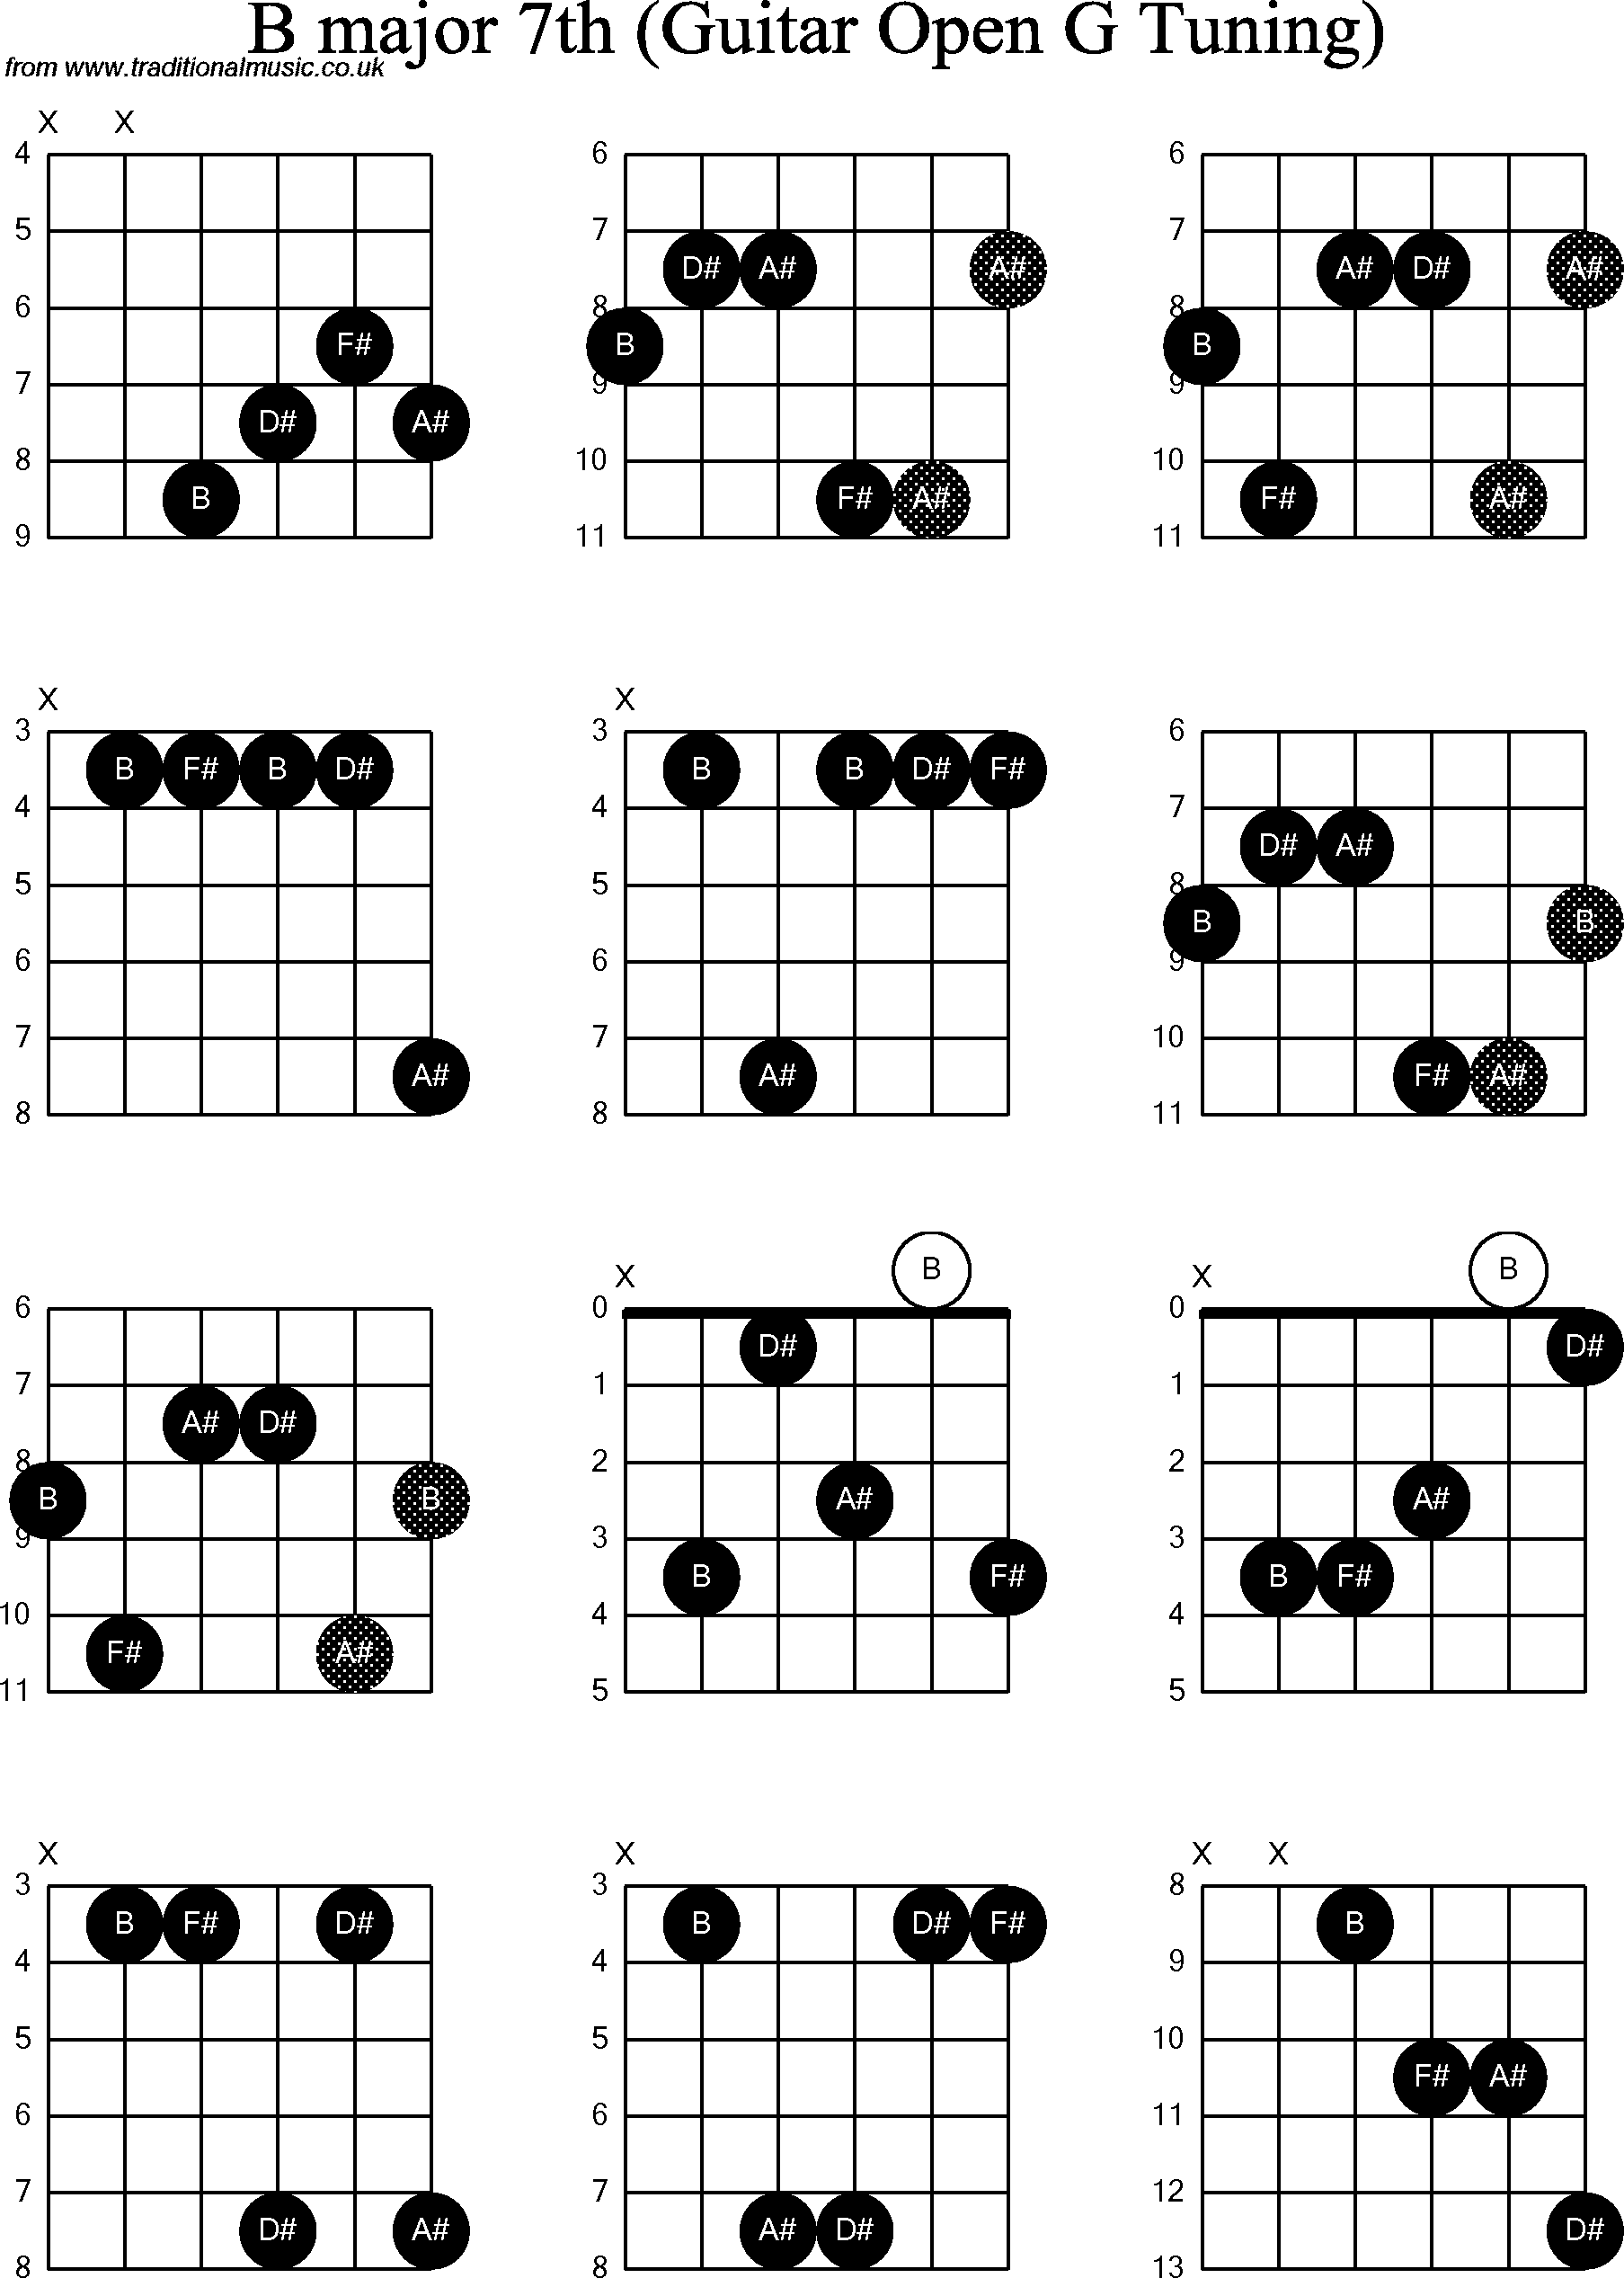 chord diagrams for  dobro b major7th